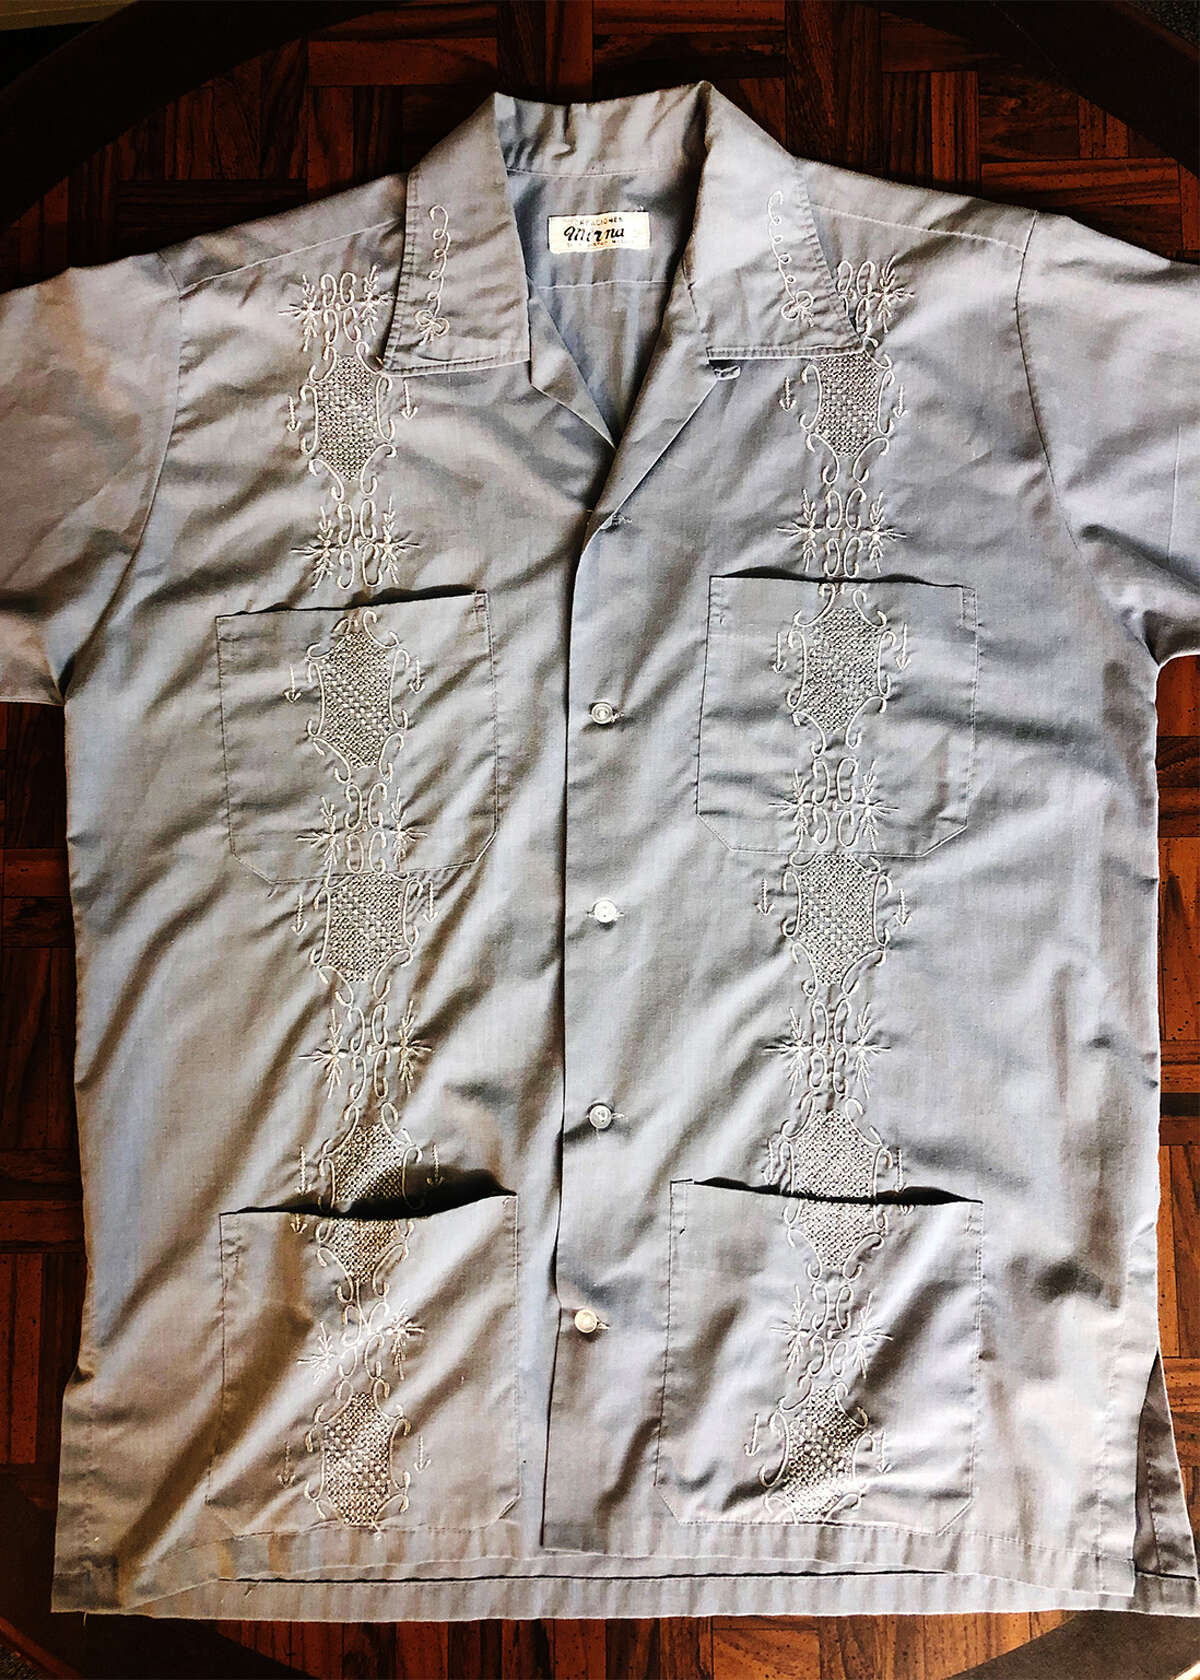 A guayabera the author bought in a market in Nicaragua.